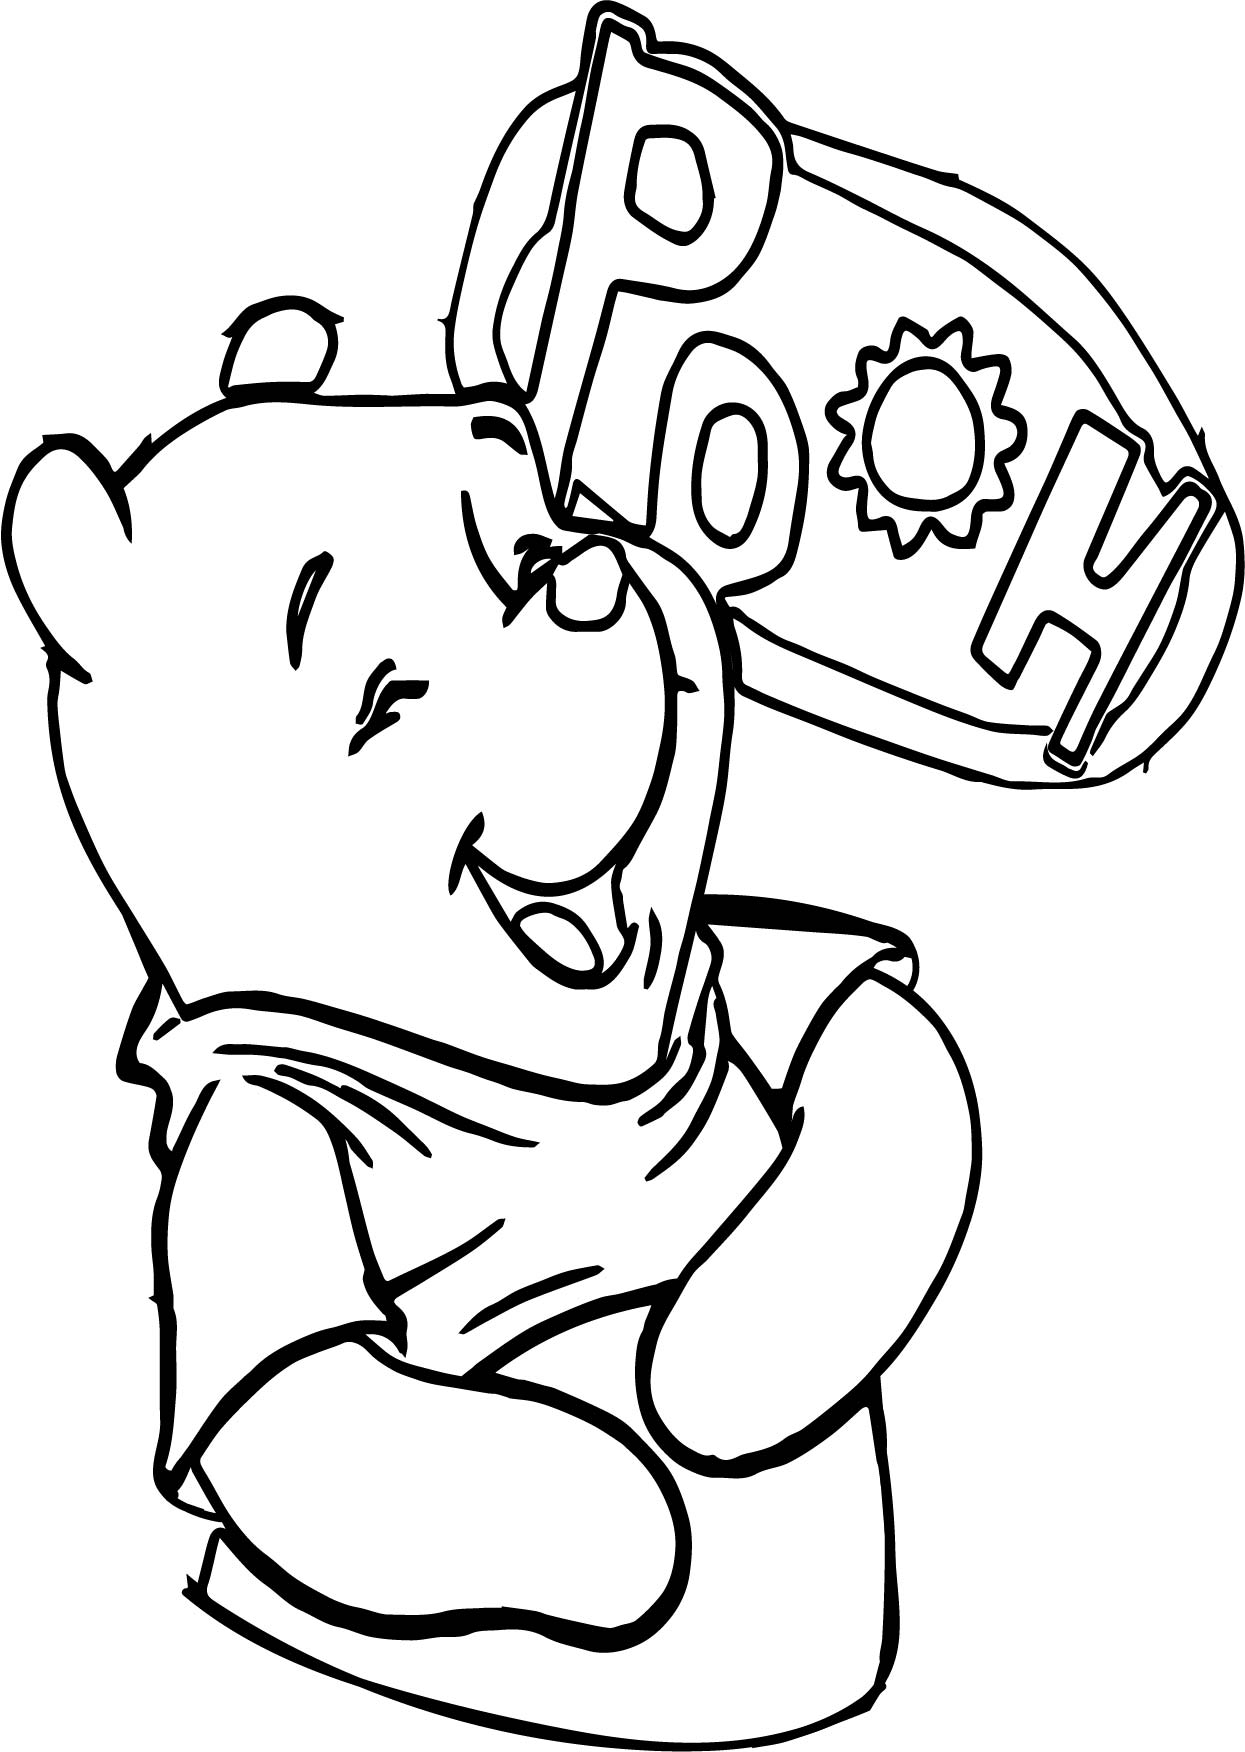 Winnie The Pooh Laugh Coloring Page